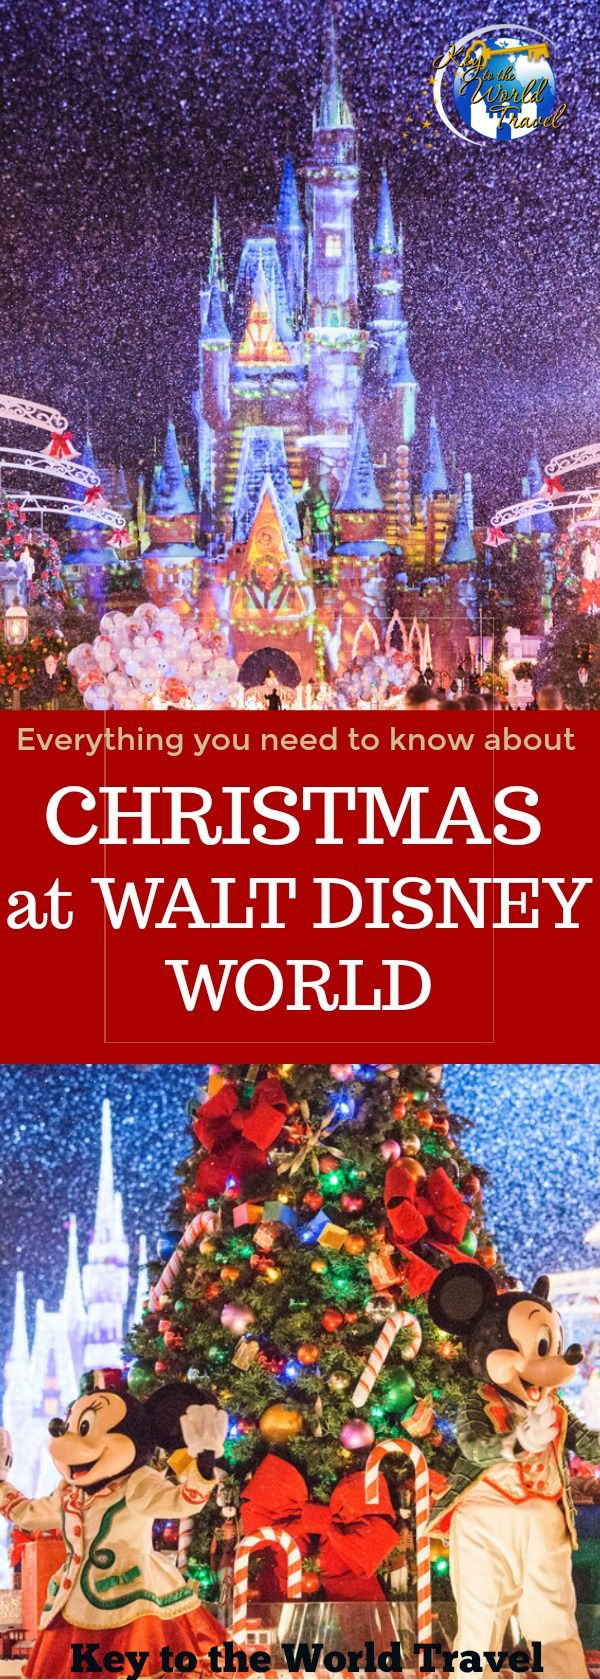 Everything you need to know about the Christmas season at Walt Disney World Resort ®.